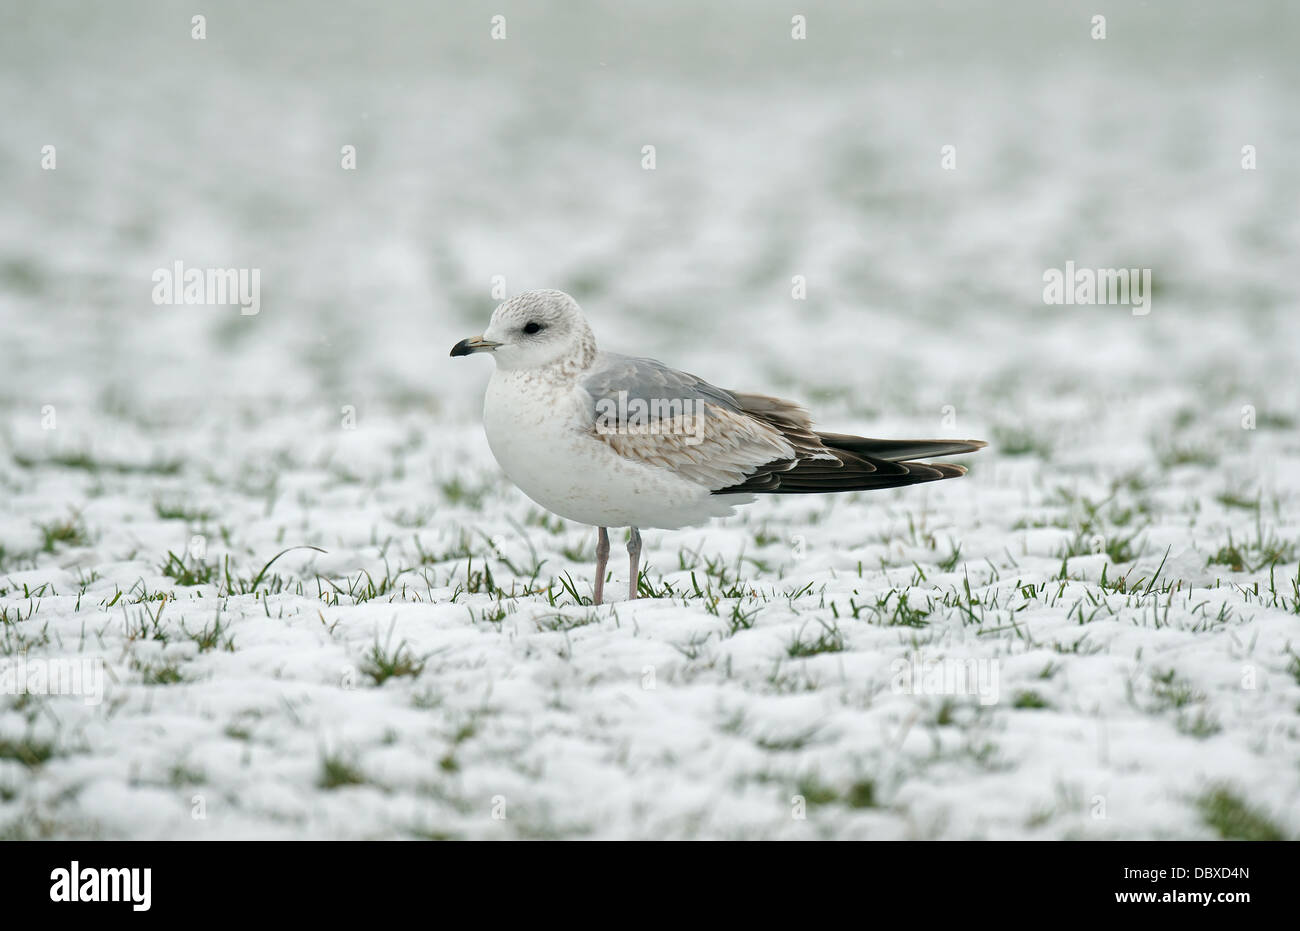 Common Gull 1st winter plumage - Stock Image